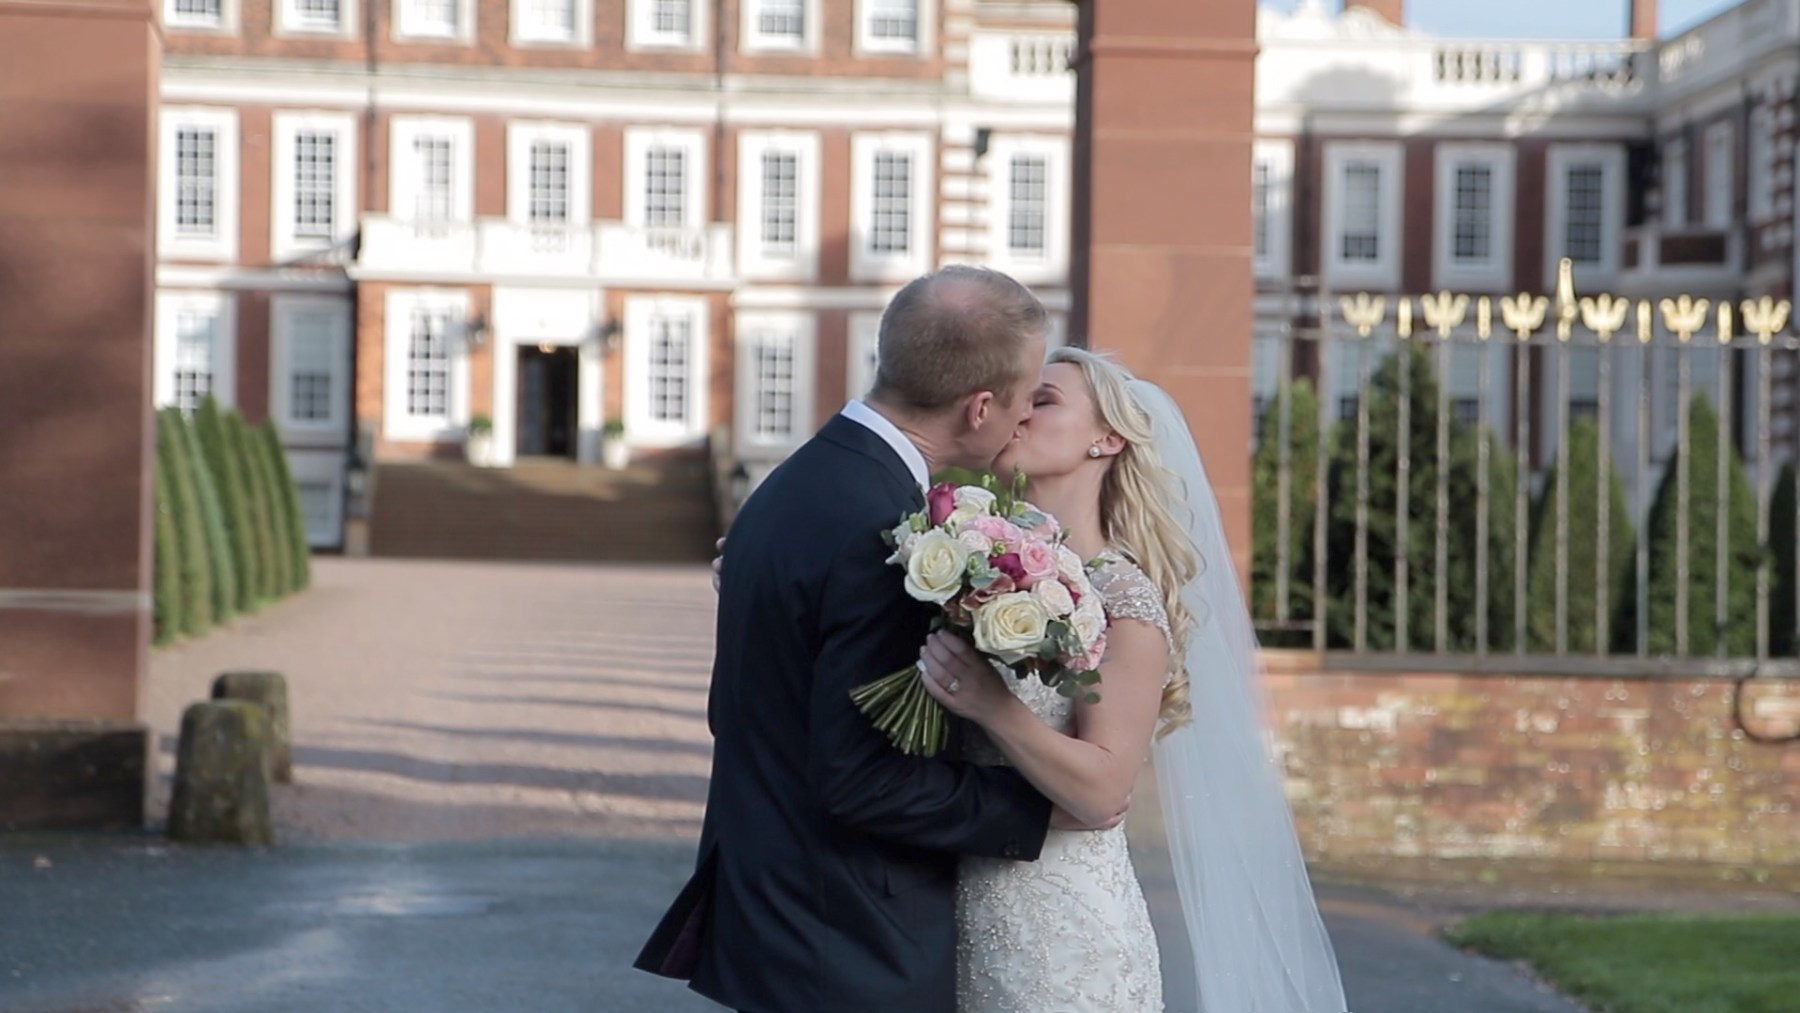 Wedding Video at Knowsley Hall near Liverpool